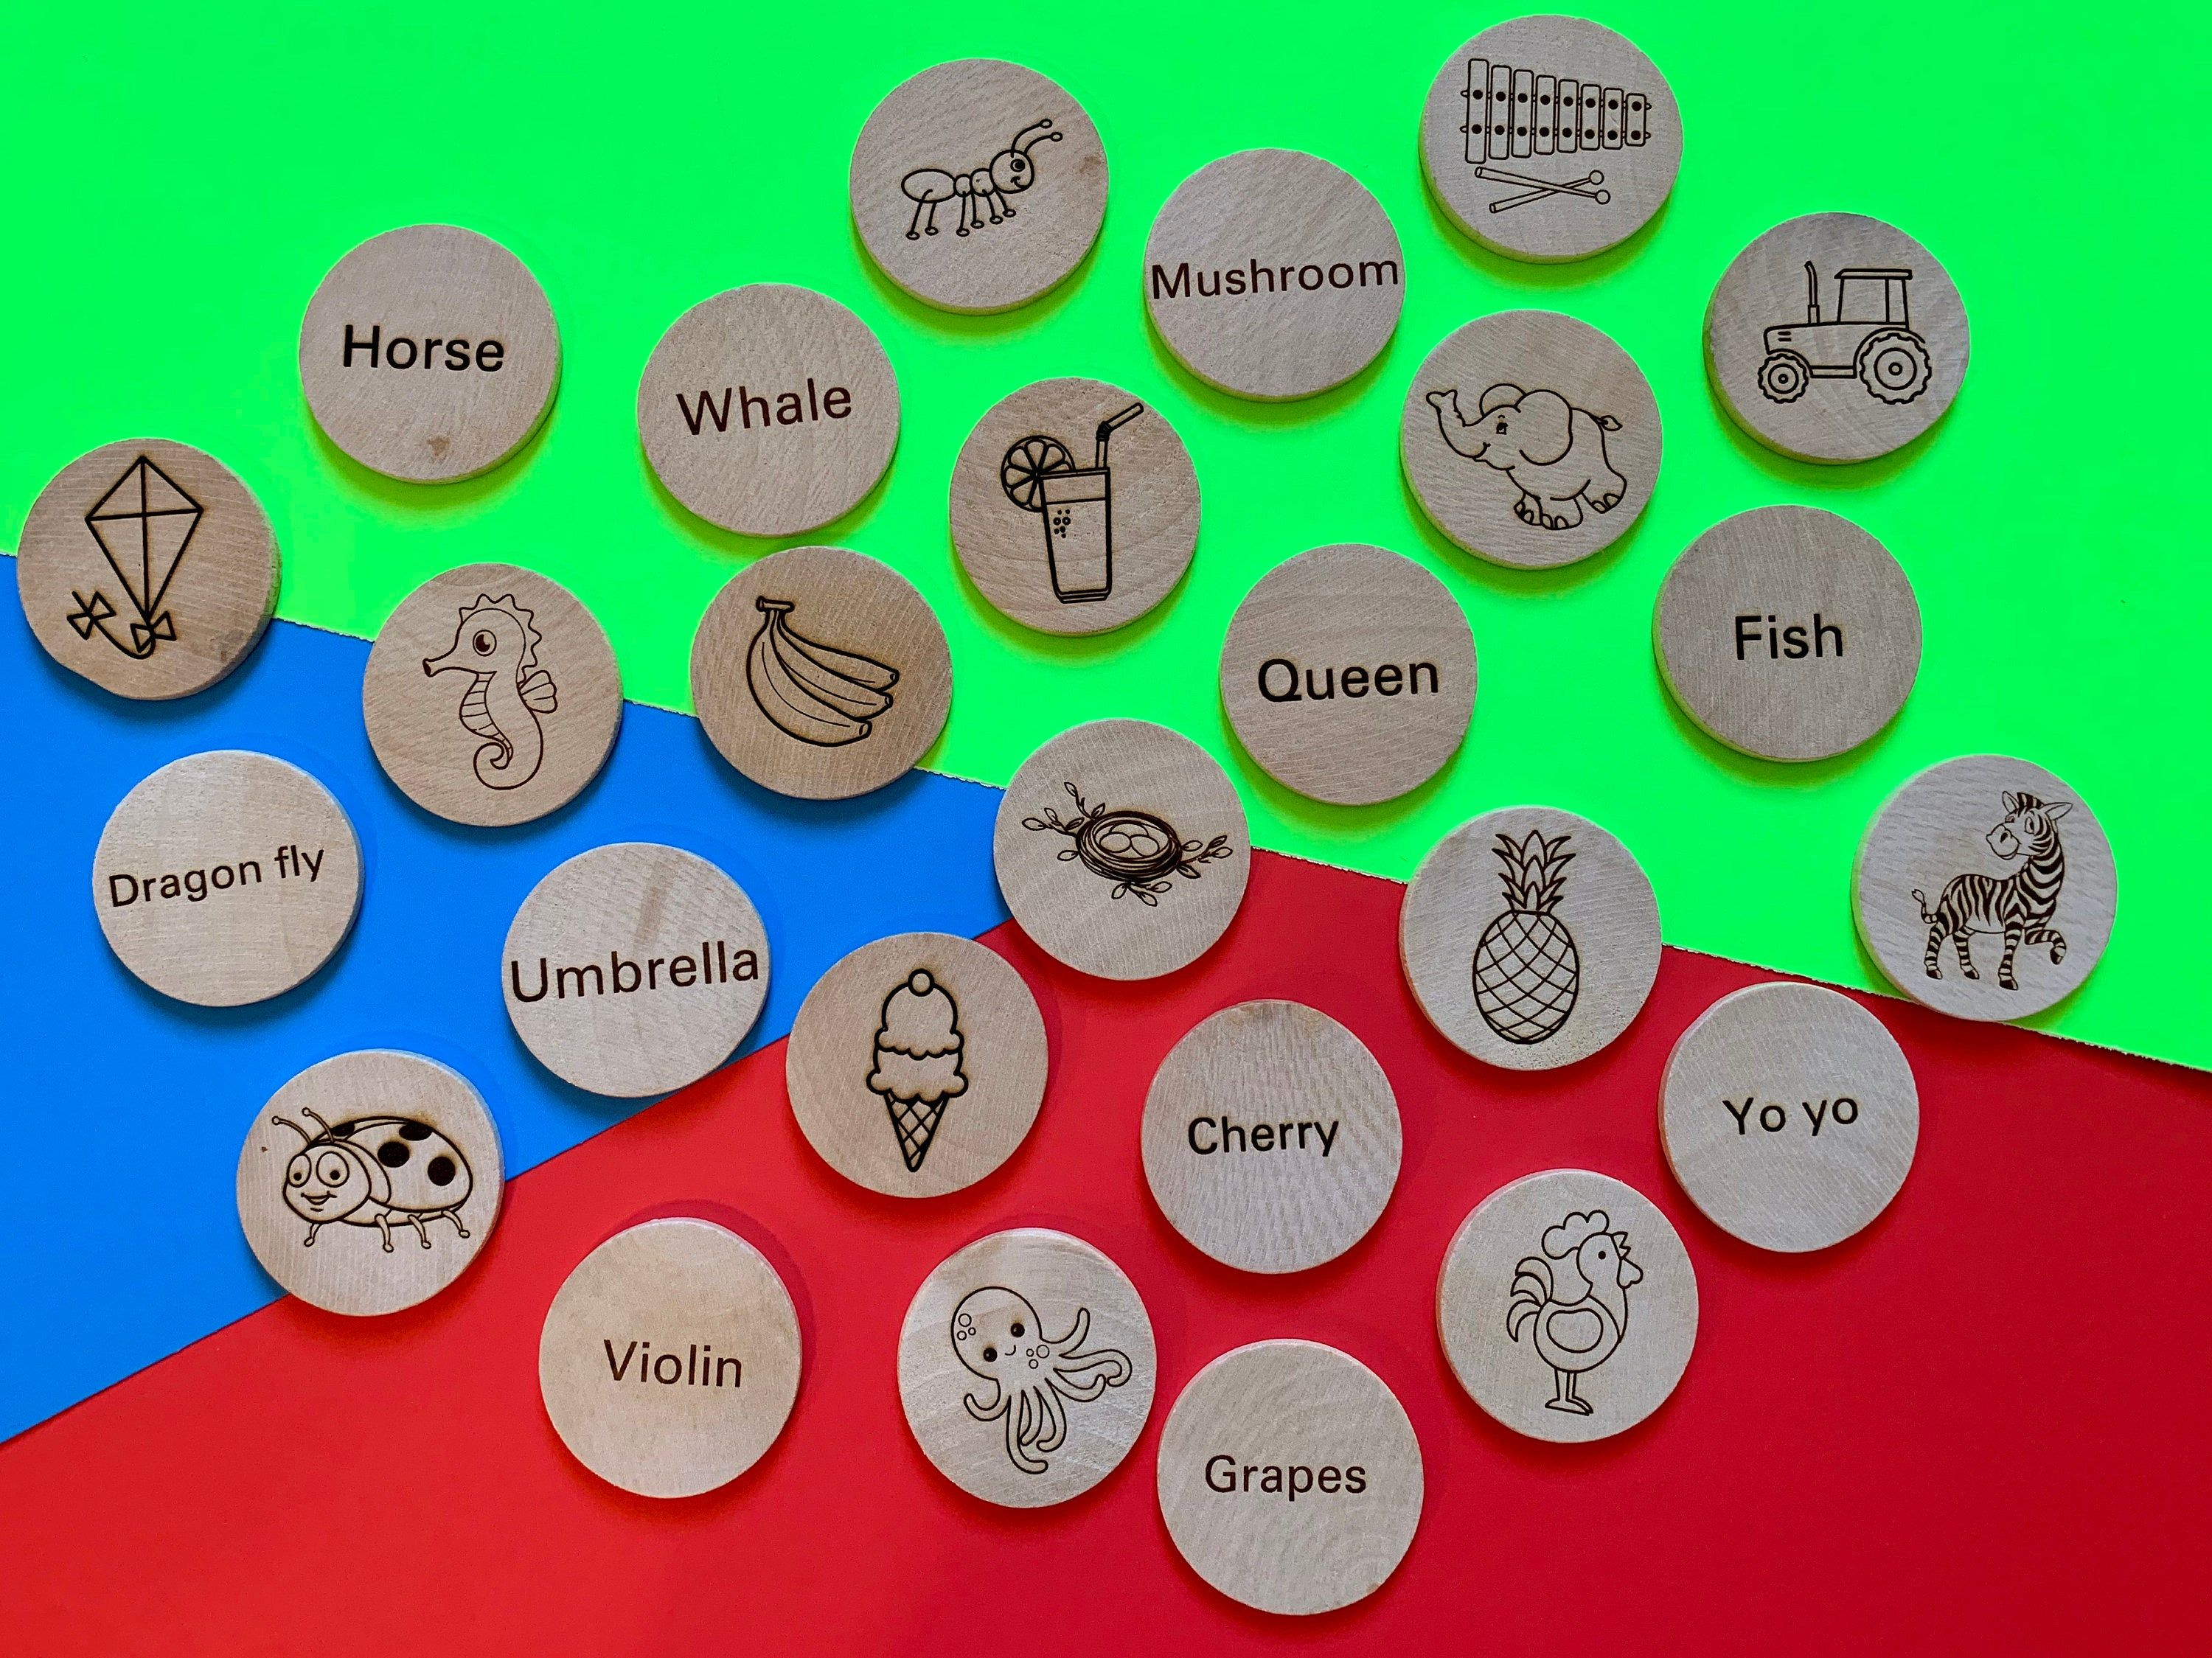 Wooden Alphabet Discs Early Learning Tool With Alphabet Word Image By Otbhandmade On Etsy In 2021 Alphabet Words Learning Tools Early Learning [ 2249 x 3000 Pixel ]